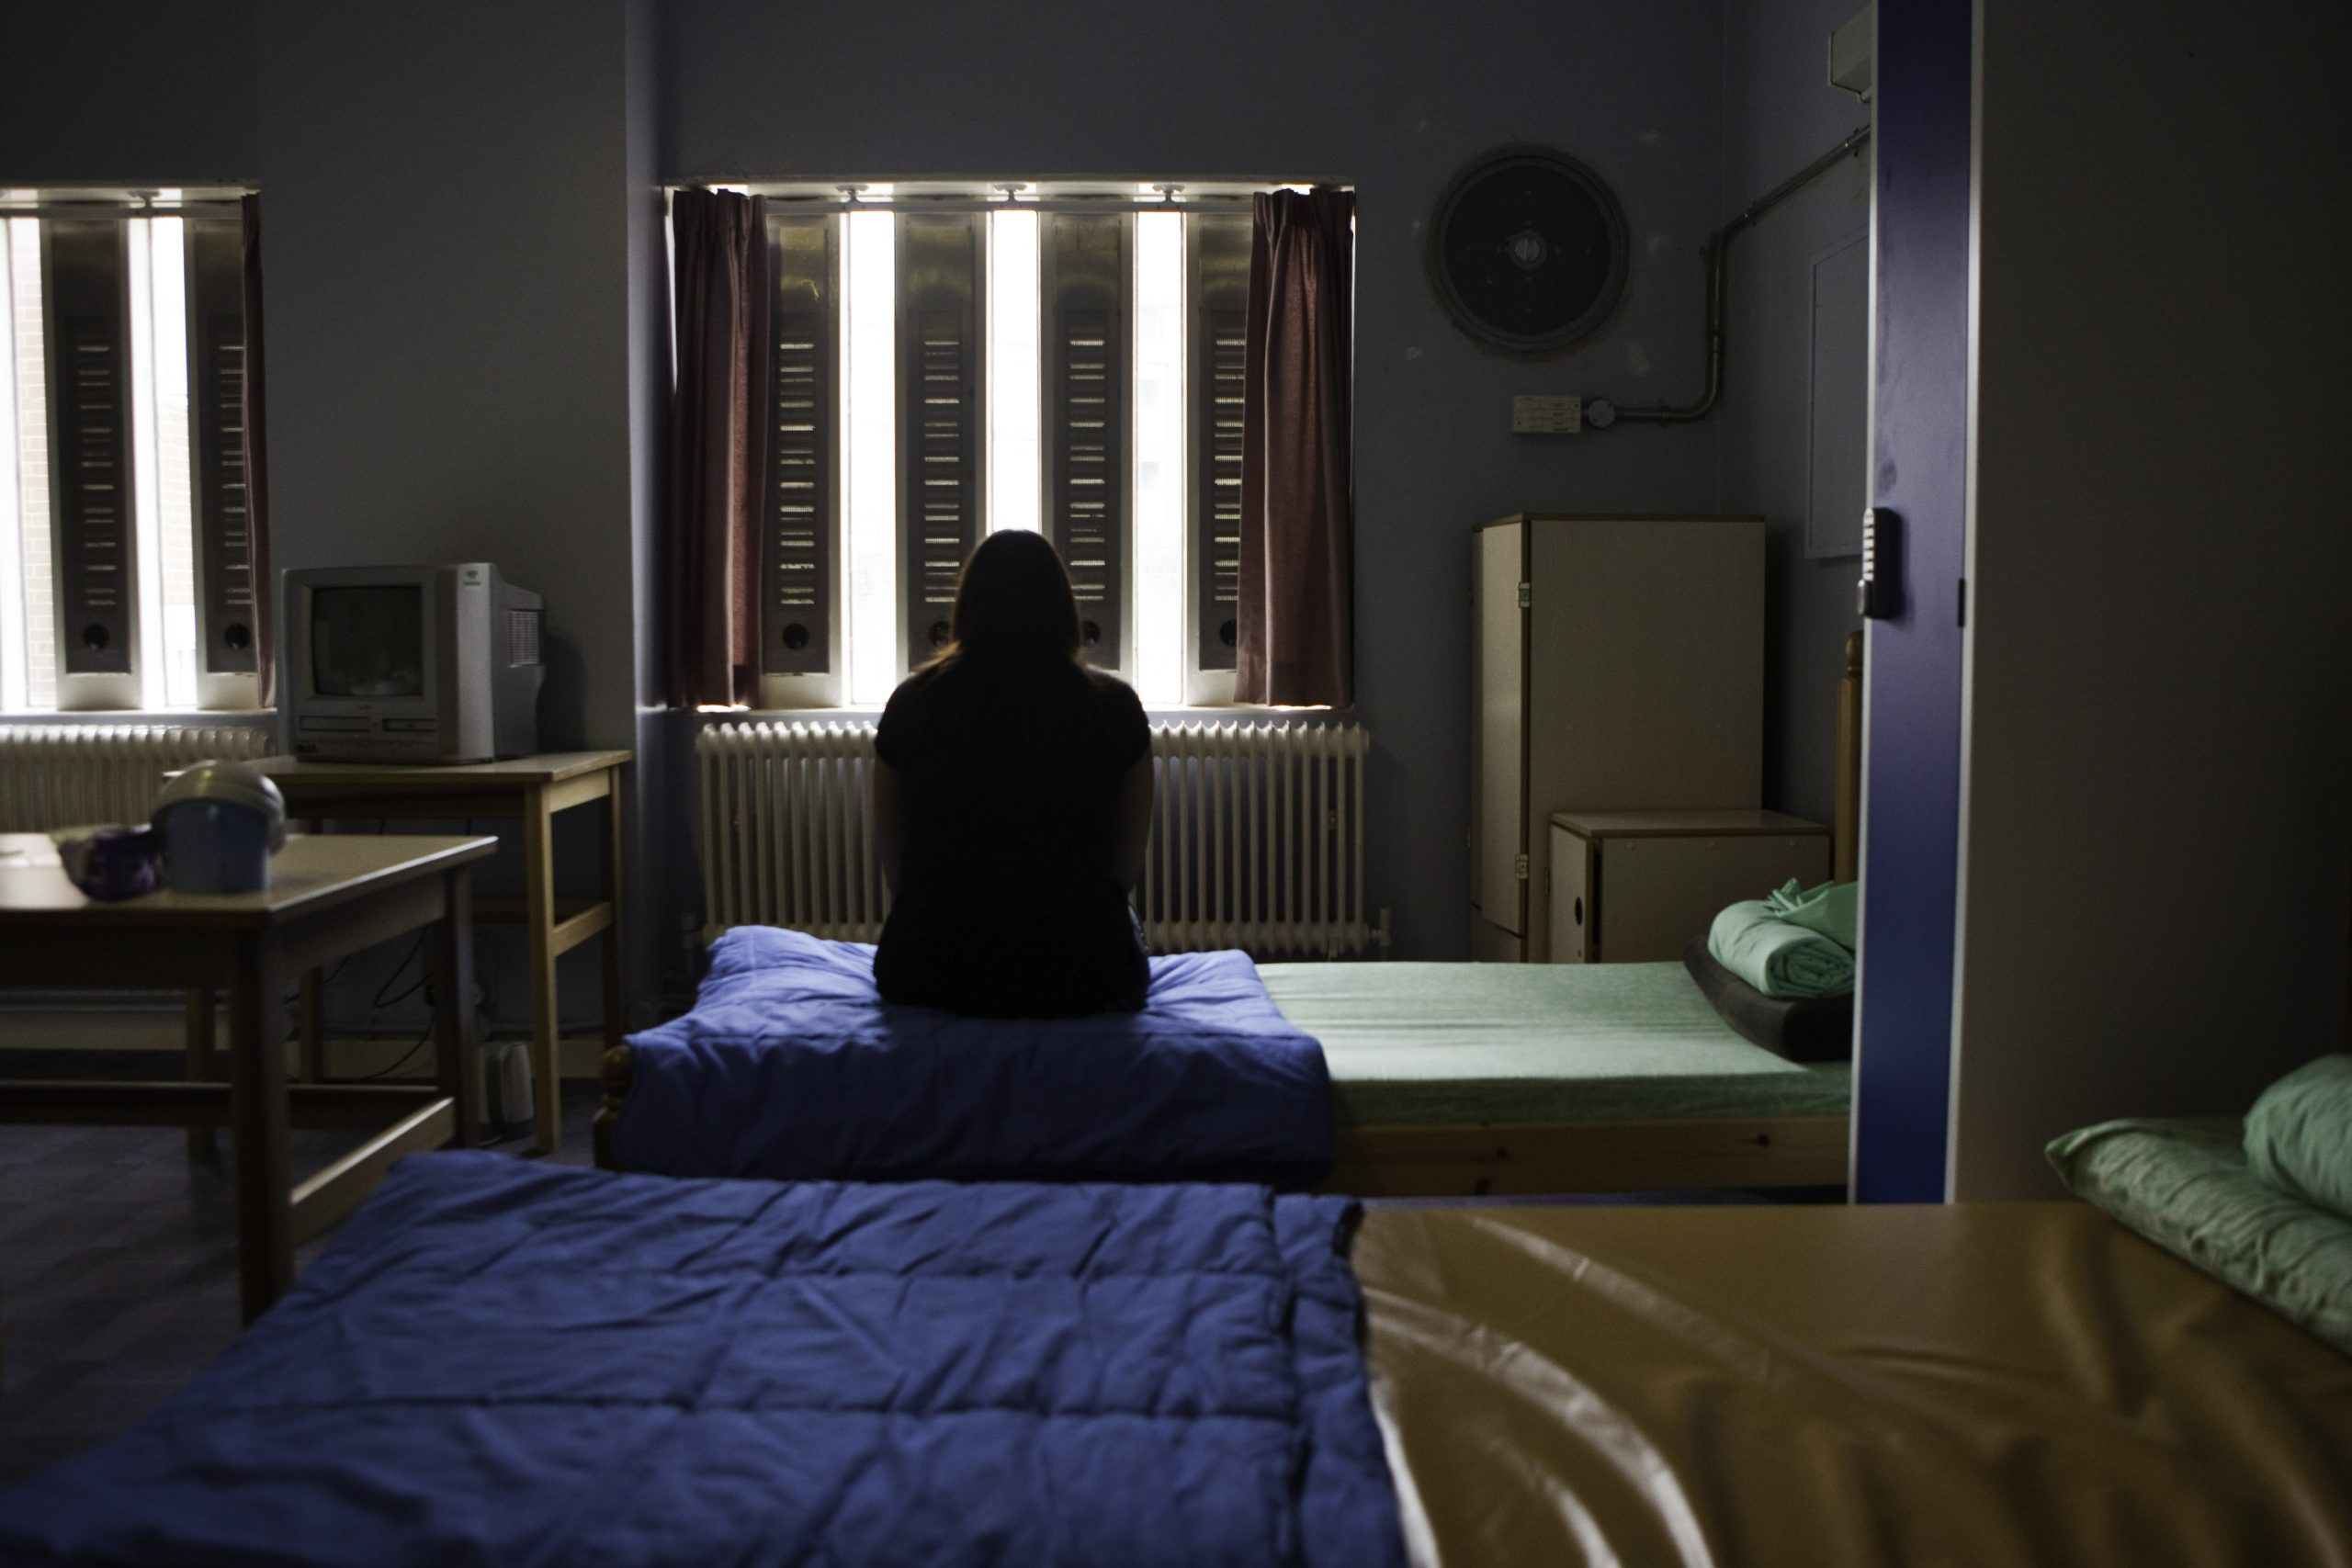 Abandoned rape case blamed on police and CPS failings